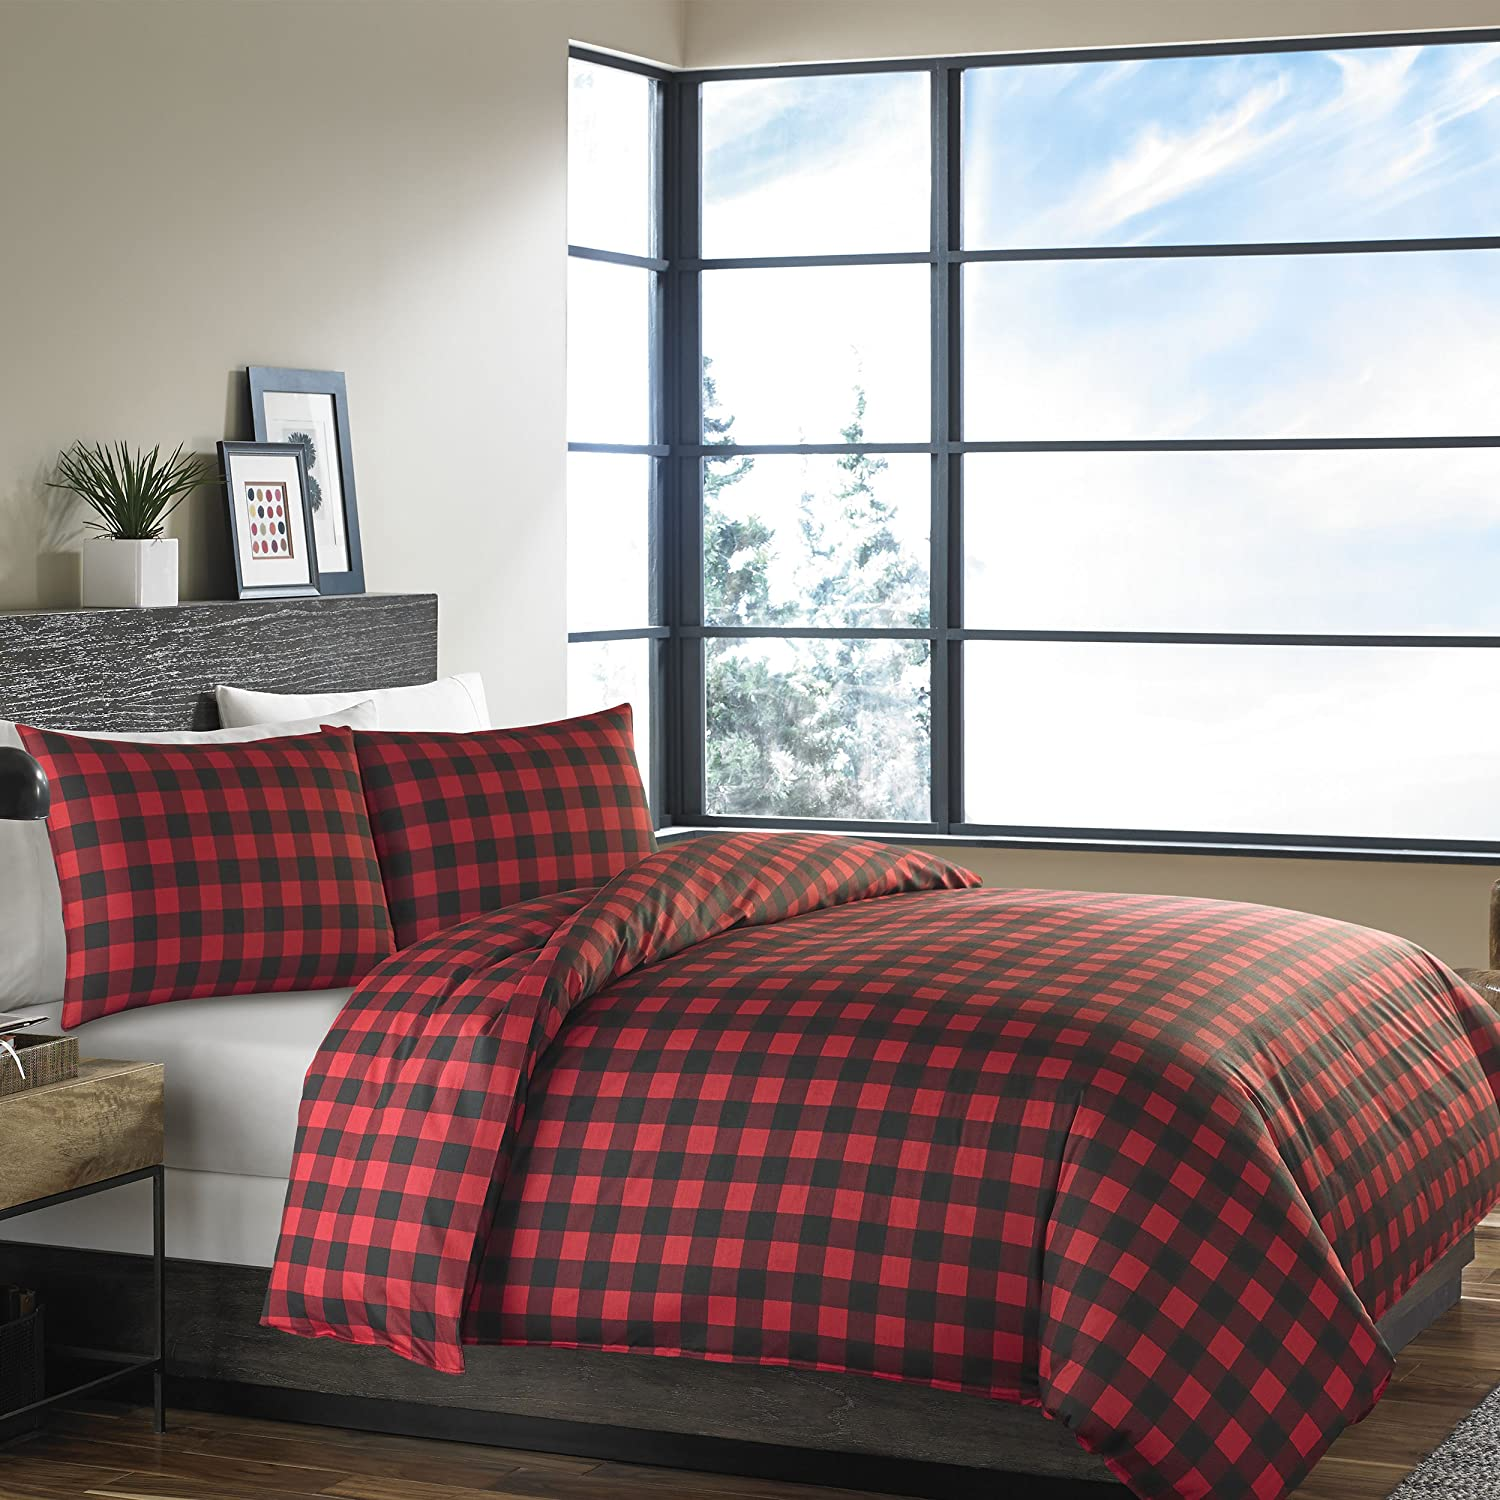 Mountain Plaid Duvet Cover Set, Full/Queen, Scarlet Red